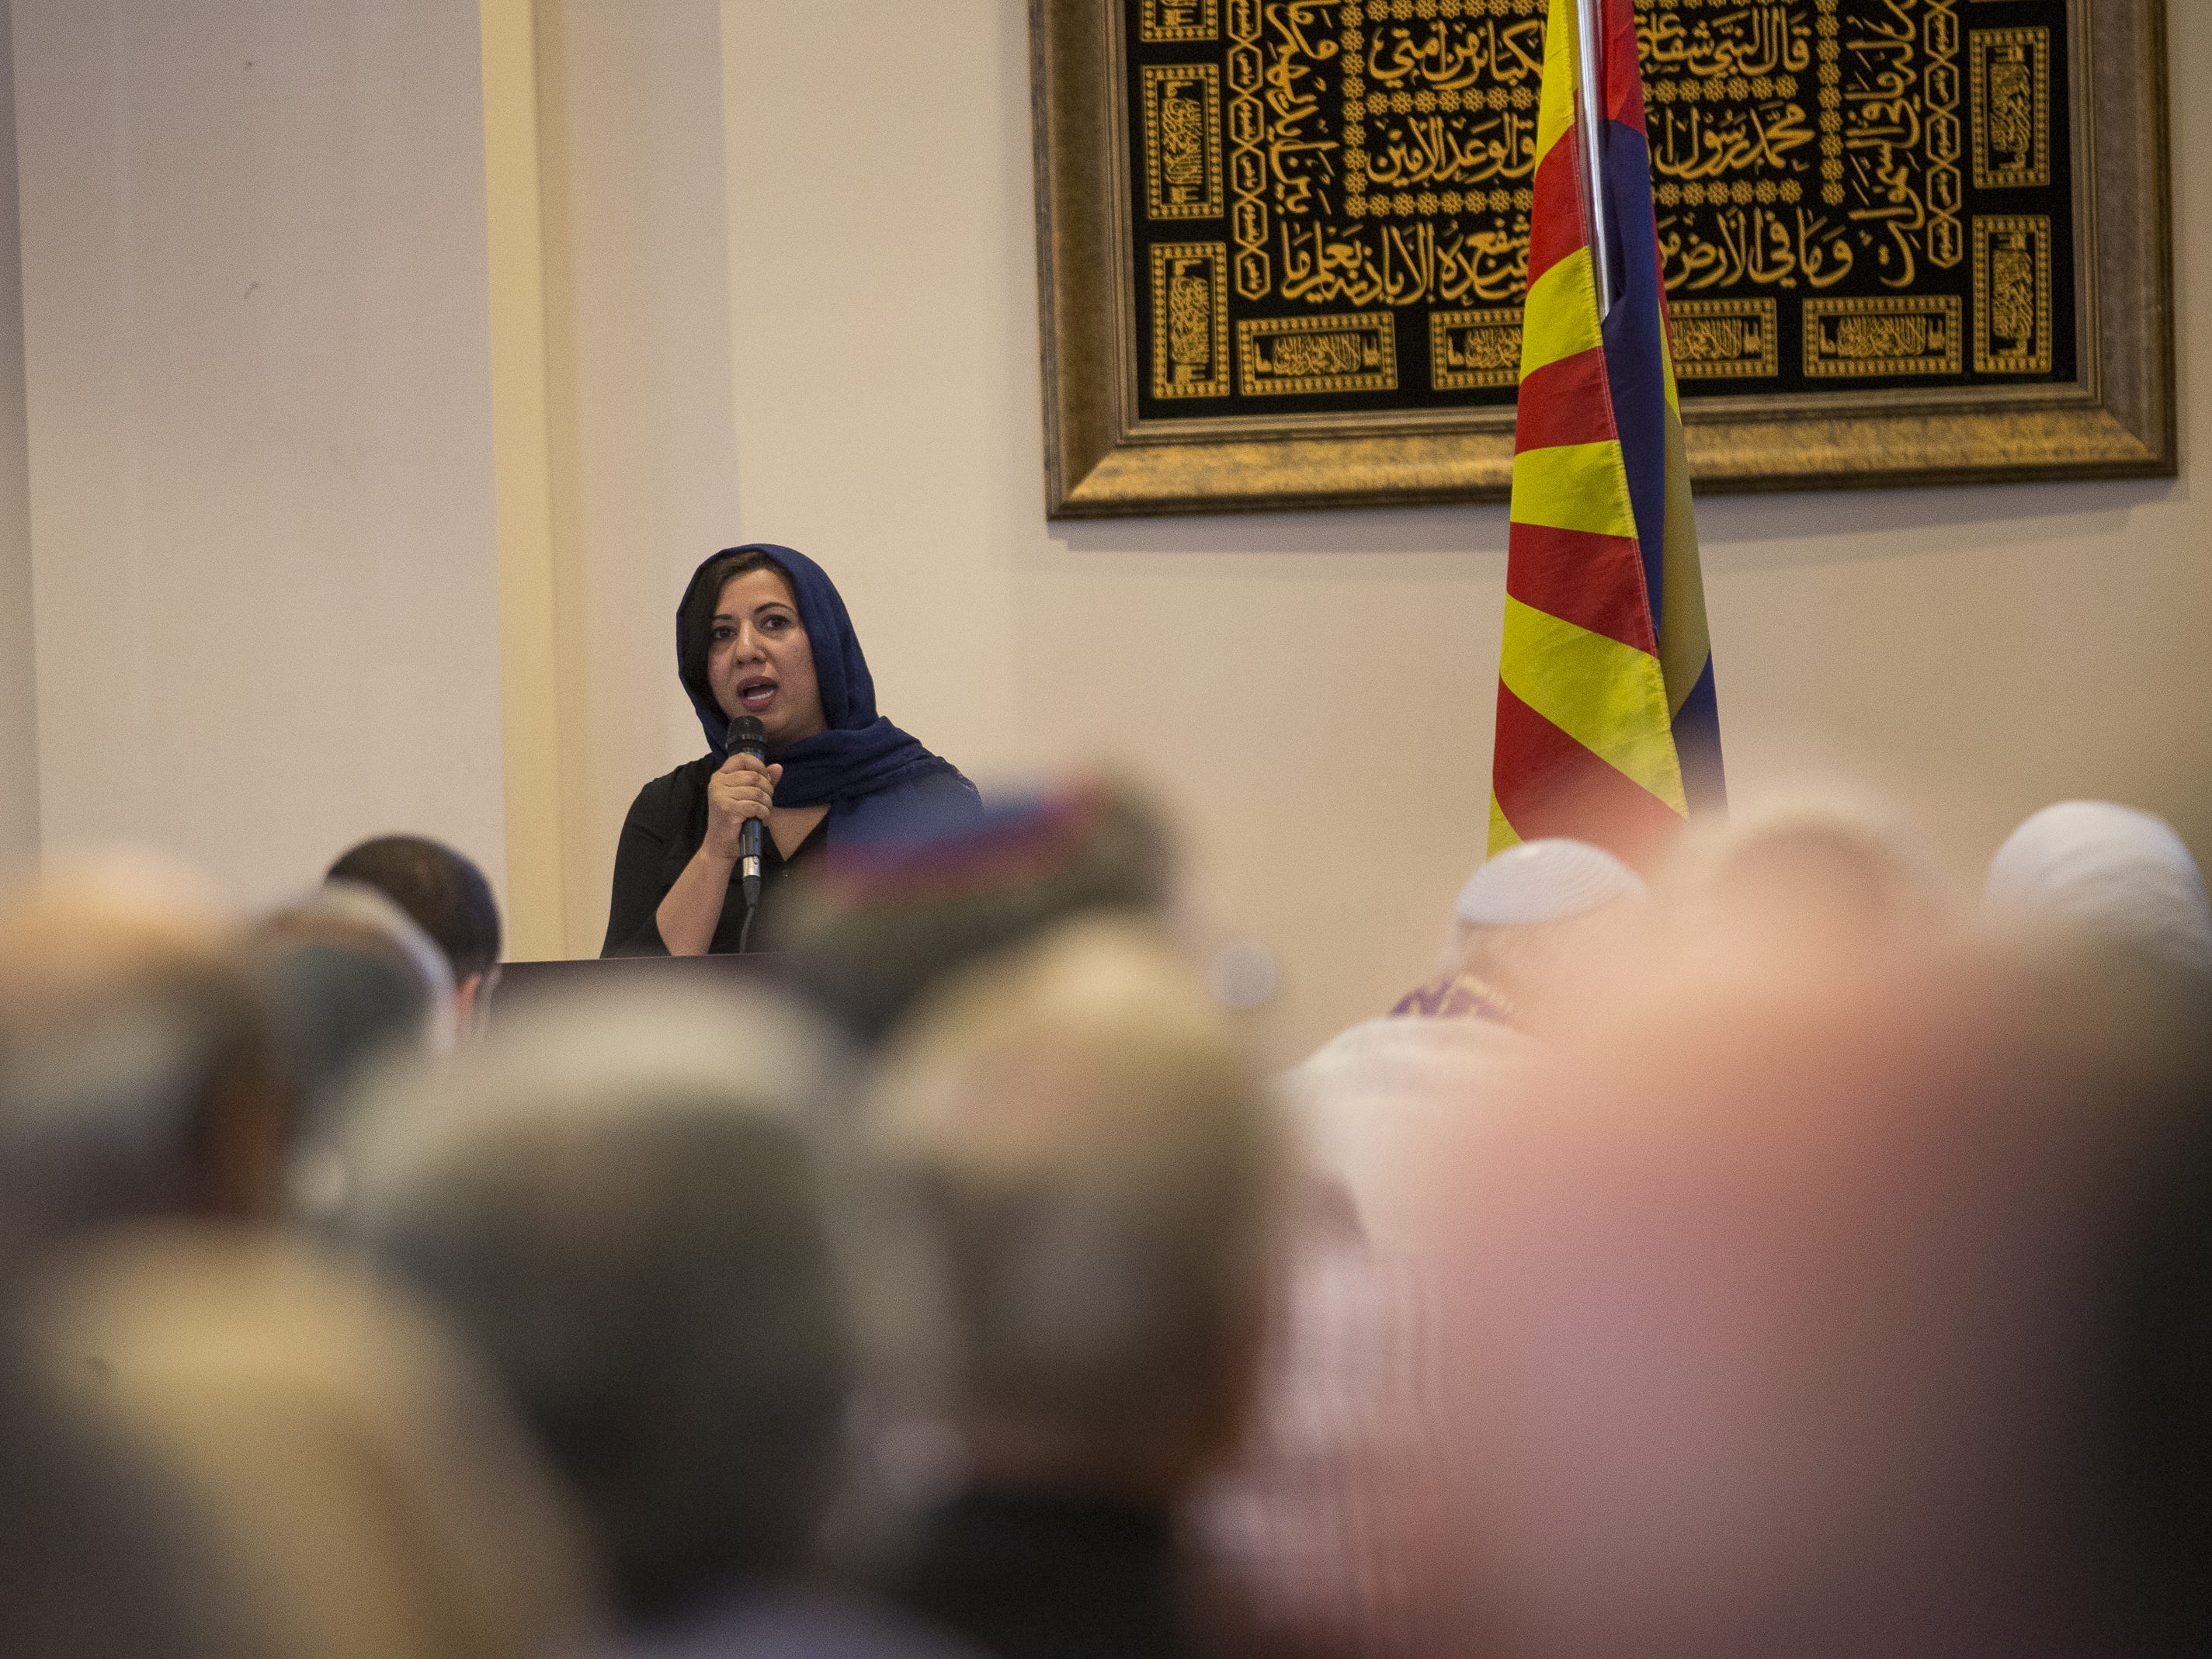 Sadia Zubairi, the public relations coordinator for the Islamic Center of Northeast Valley, speaks at a vigil held at the ICNV in Scottsdale, Ariz., on Sunday, March 17, 2019, in memory of the Christchurch New Zealand shooting victims.